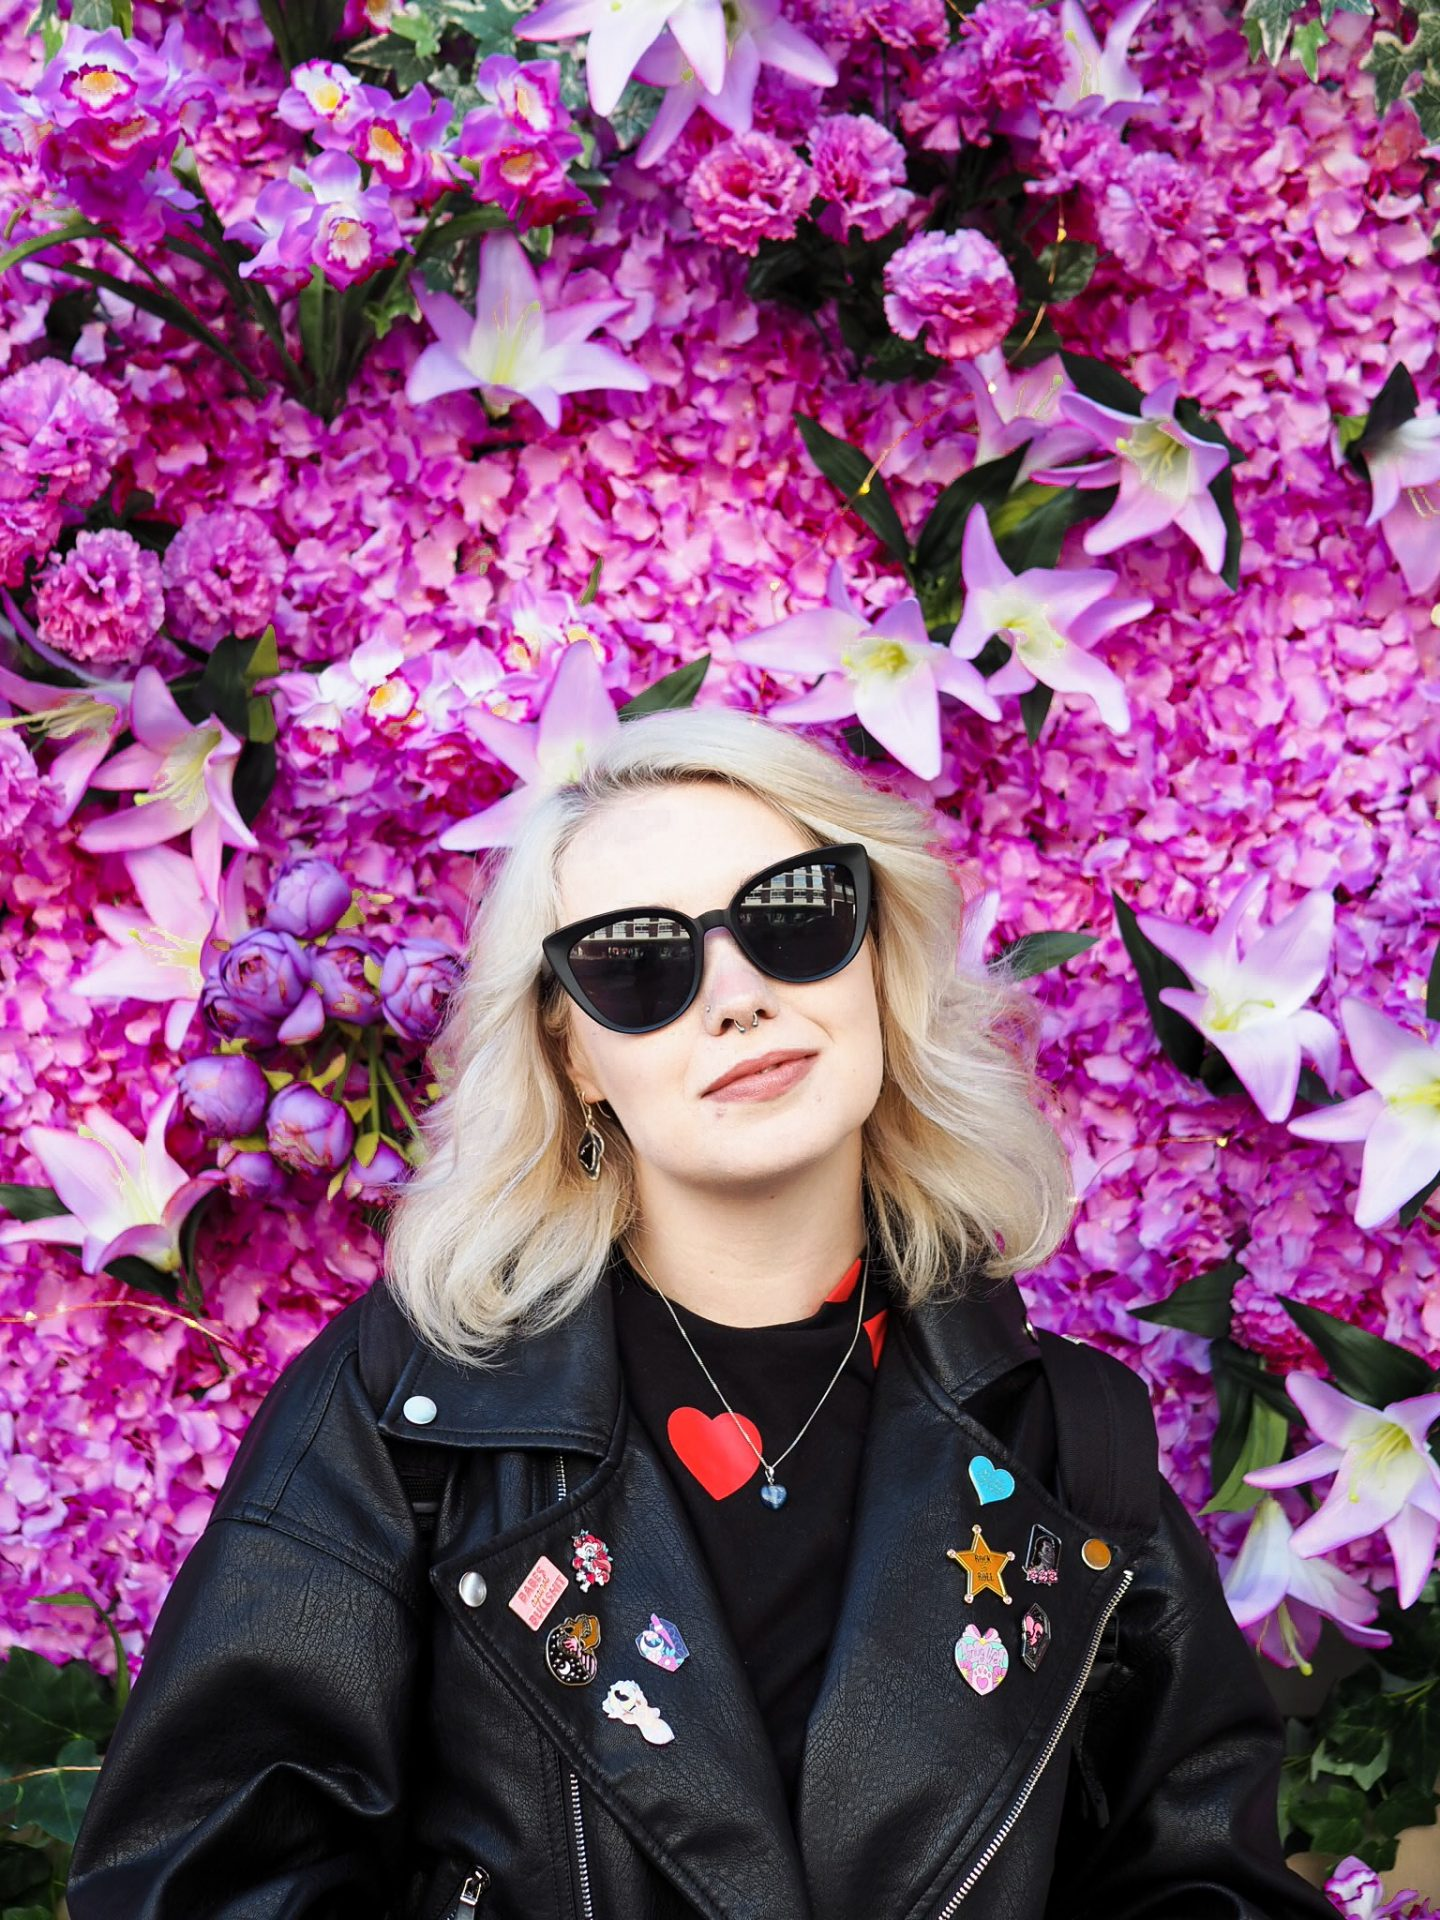 positive things image: blonde girl infront of flowers